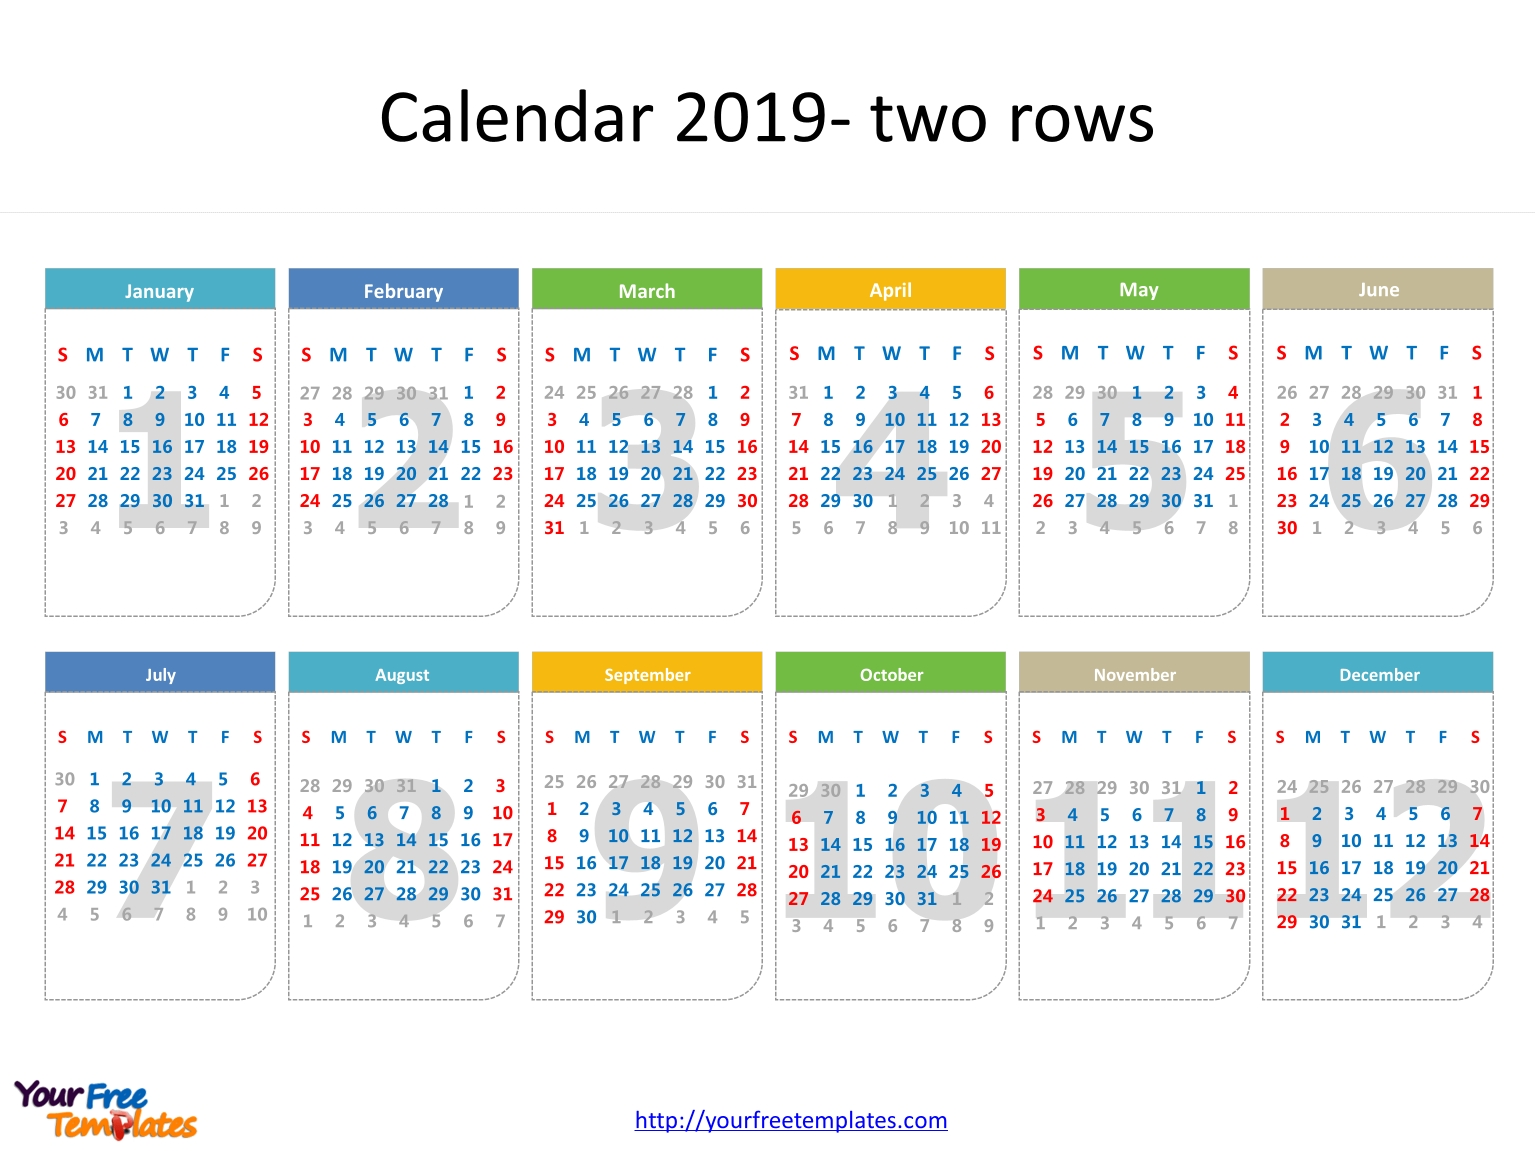 Printable Calendar 2019 Template - Free Powerpoint Templates  Calendar At A Glance Template Powerpoint